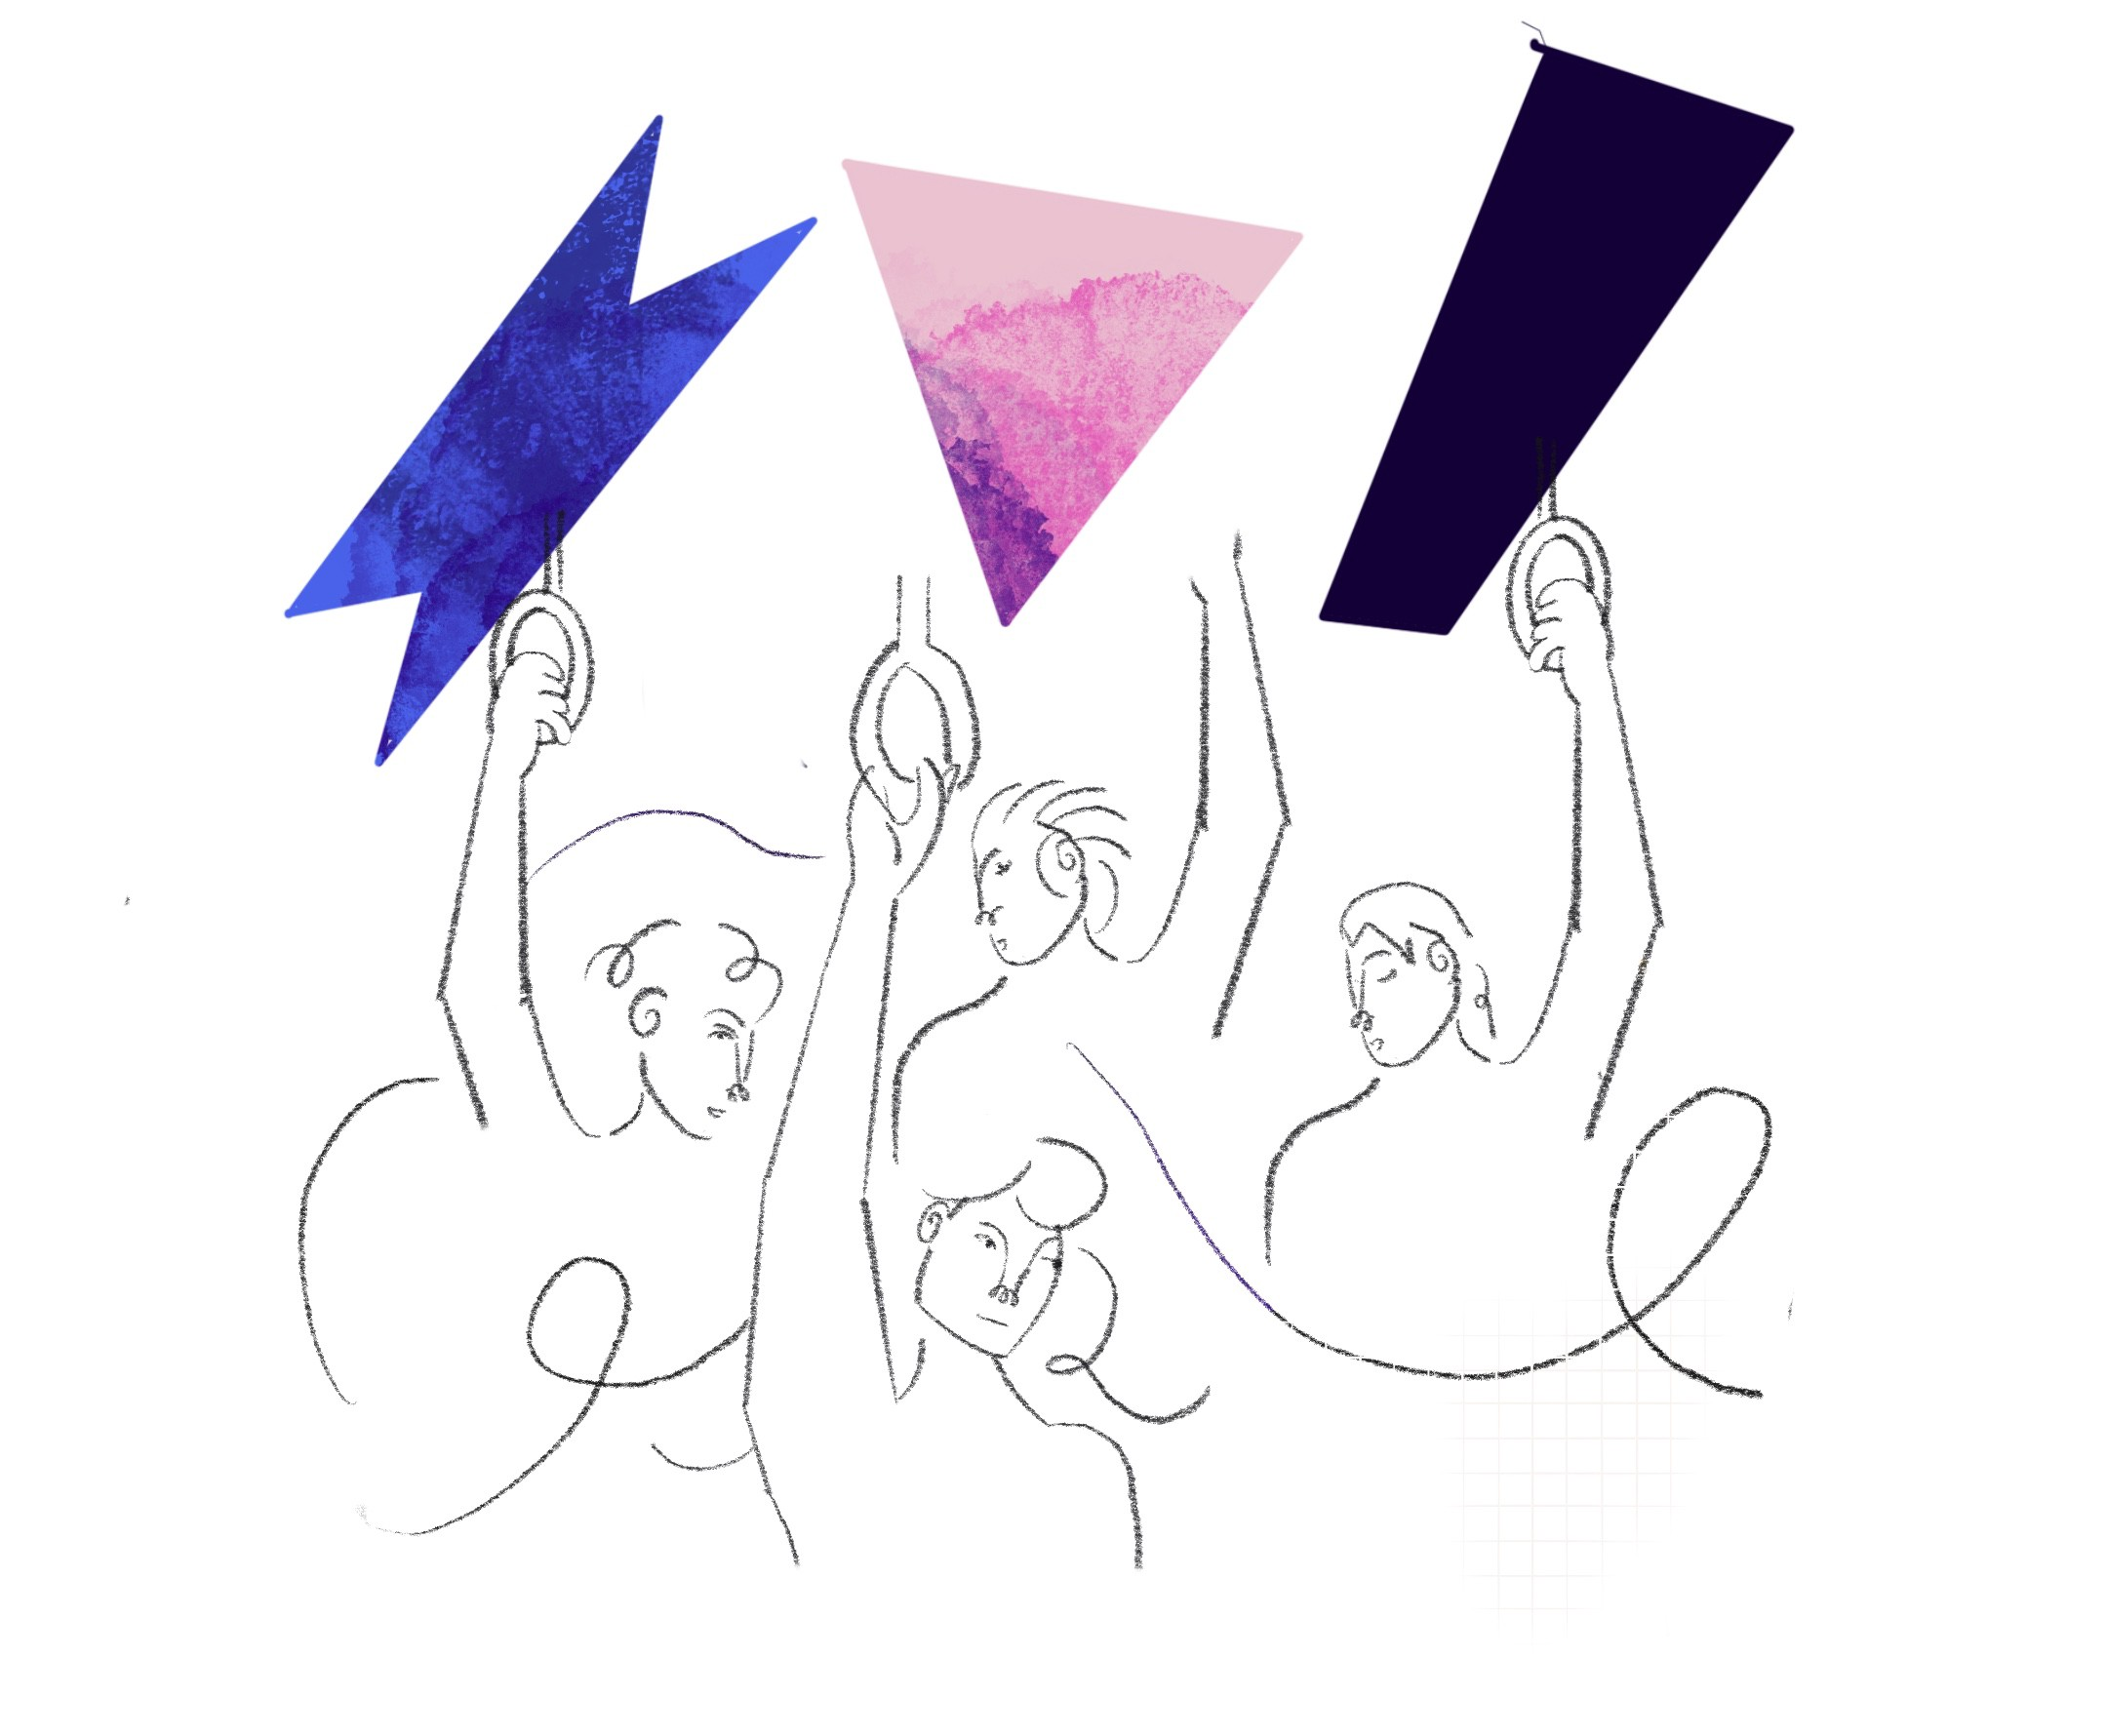 An abstract illustration of people croweded in the subway. Three colorful, sharp shapes float above them.